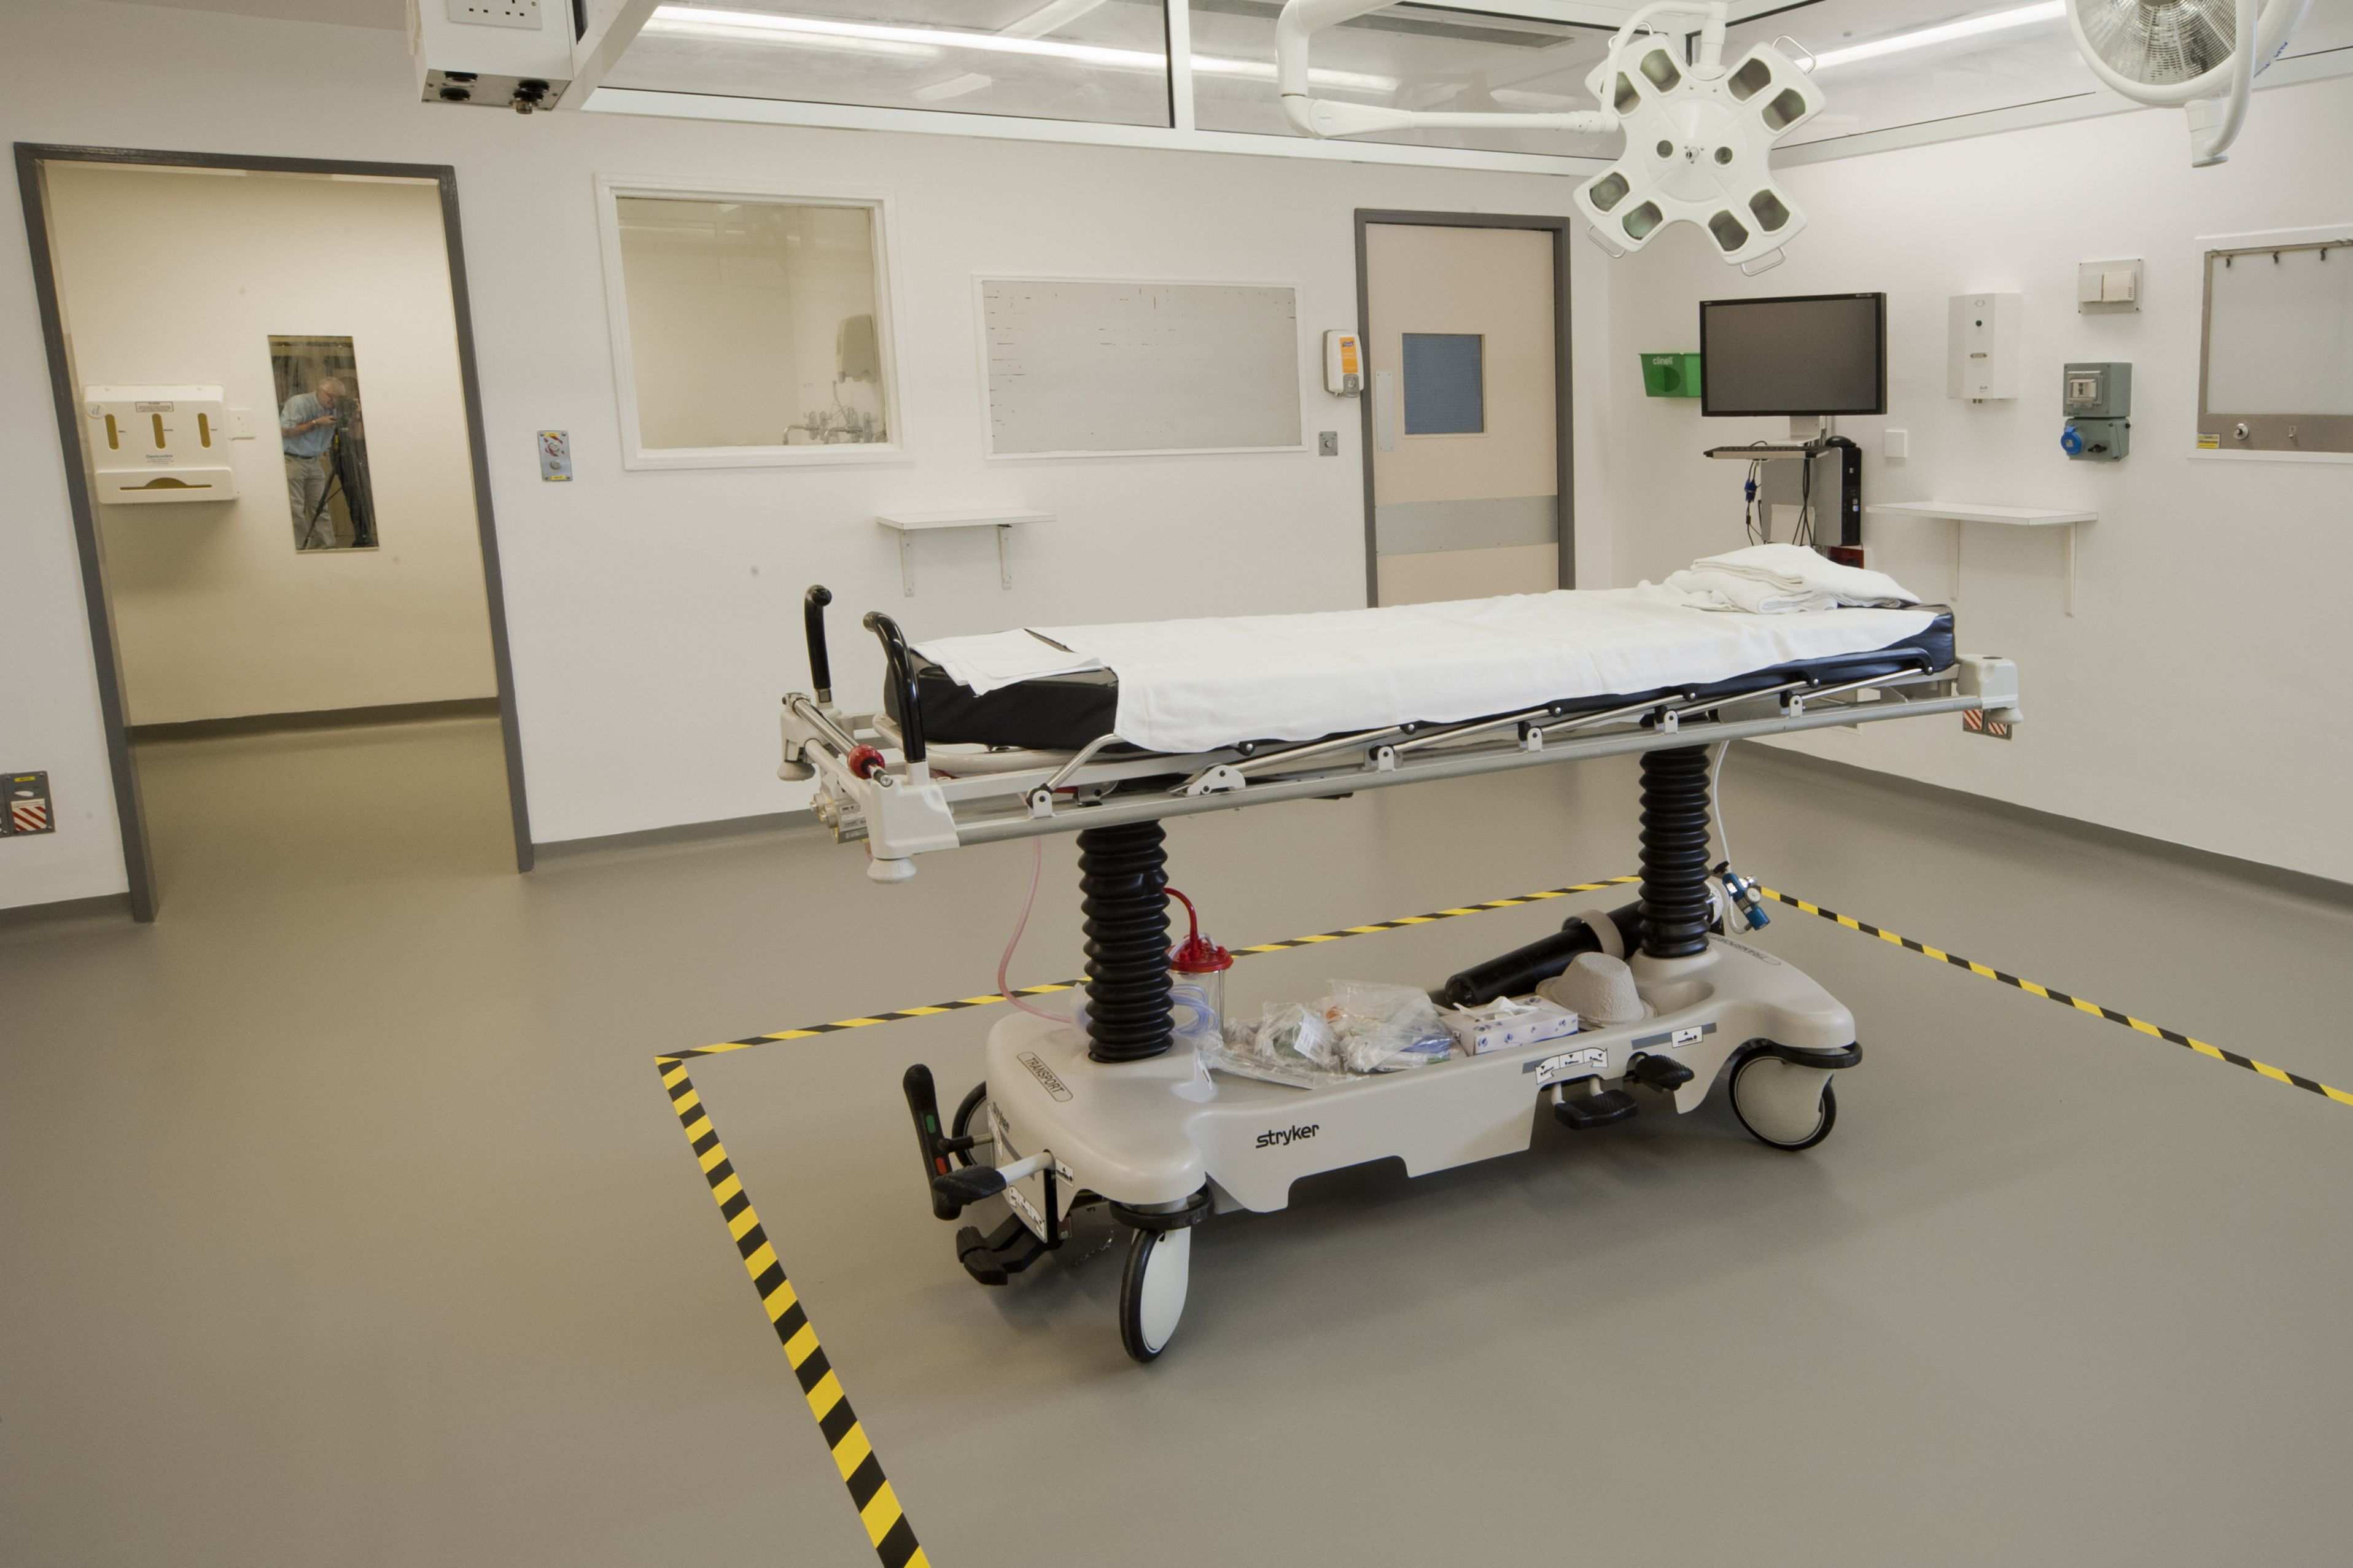 Hygienic floor and wall coating in hospital made with Sika coating systems